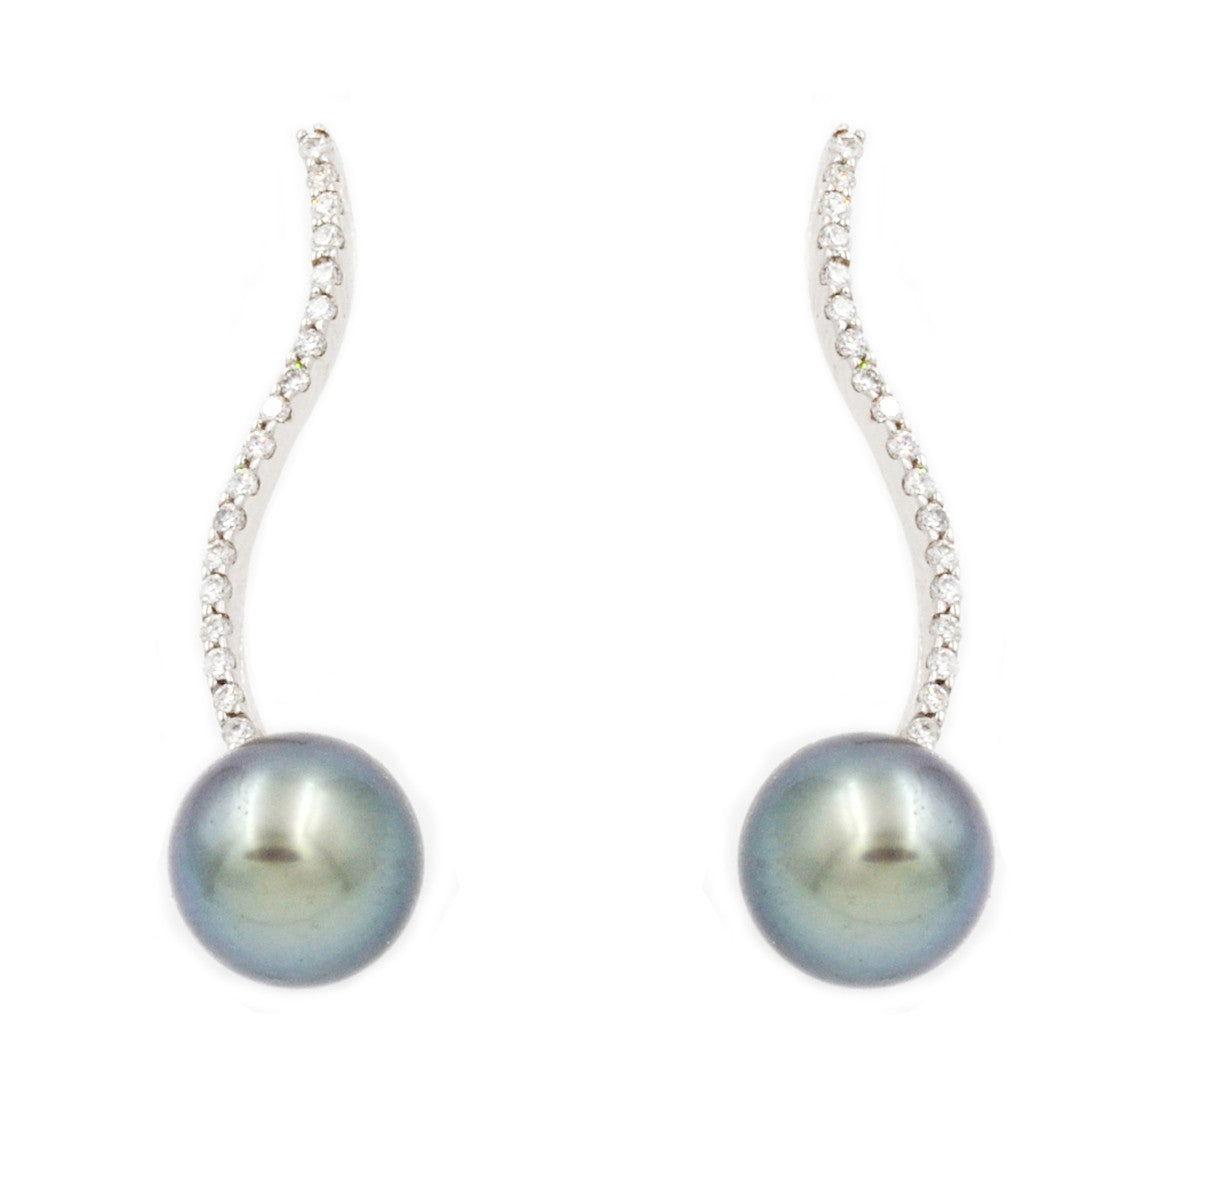 Tahitian Pearls and Diamond Earrings in 14k White Gold